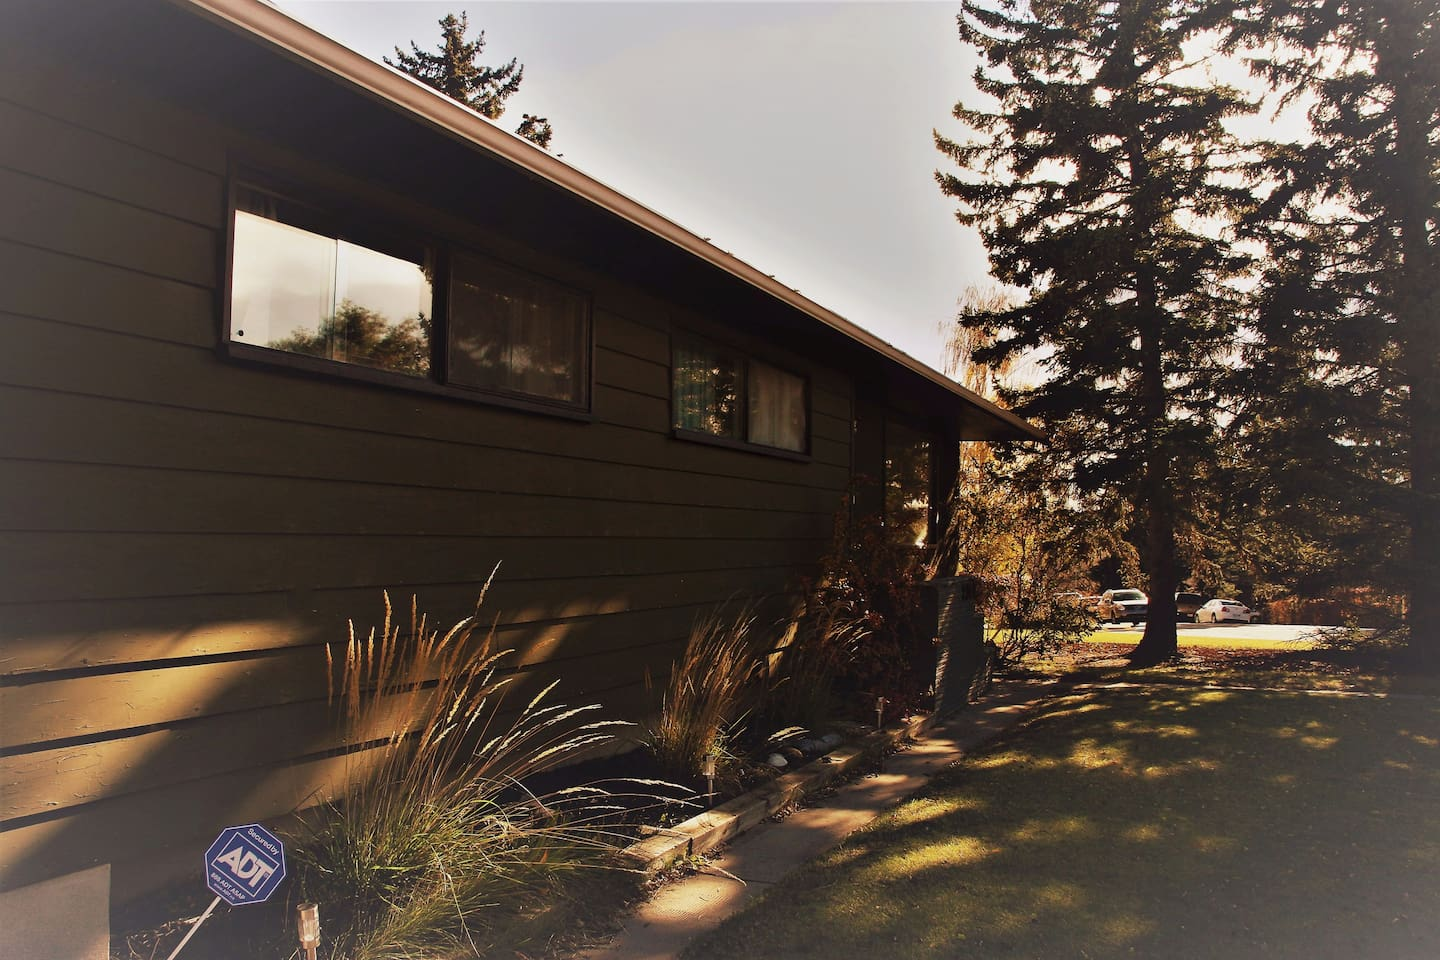 Enjoy the main floor of this clean & cozy bungalow during your visit to Calgary. Includes two bedrooms, a kitchen, a dining room / living area, and a private bathroom. It's your home away from home.